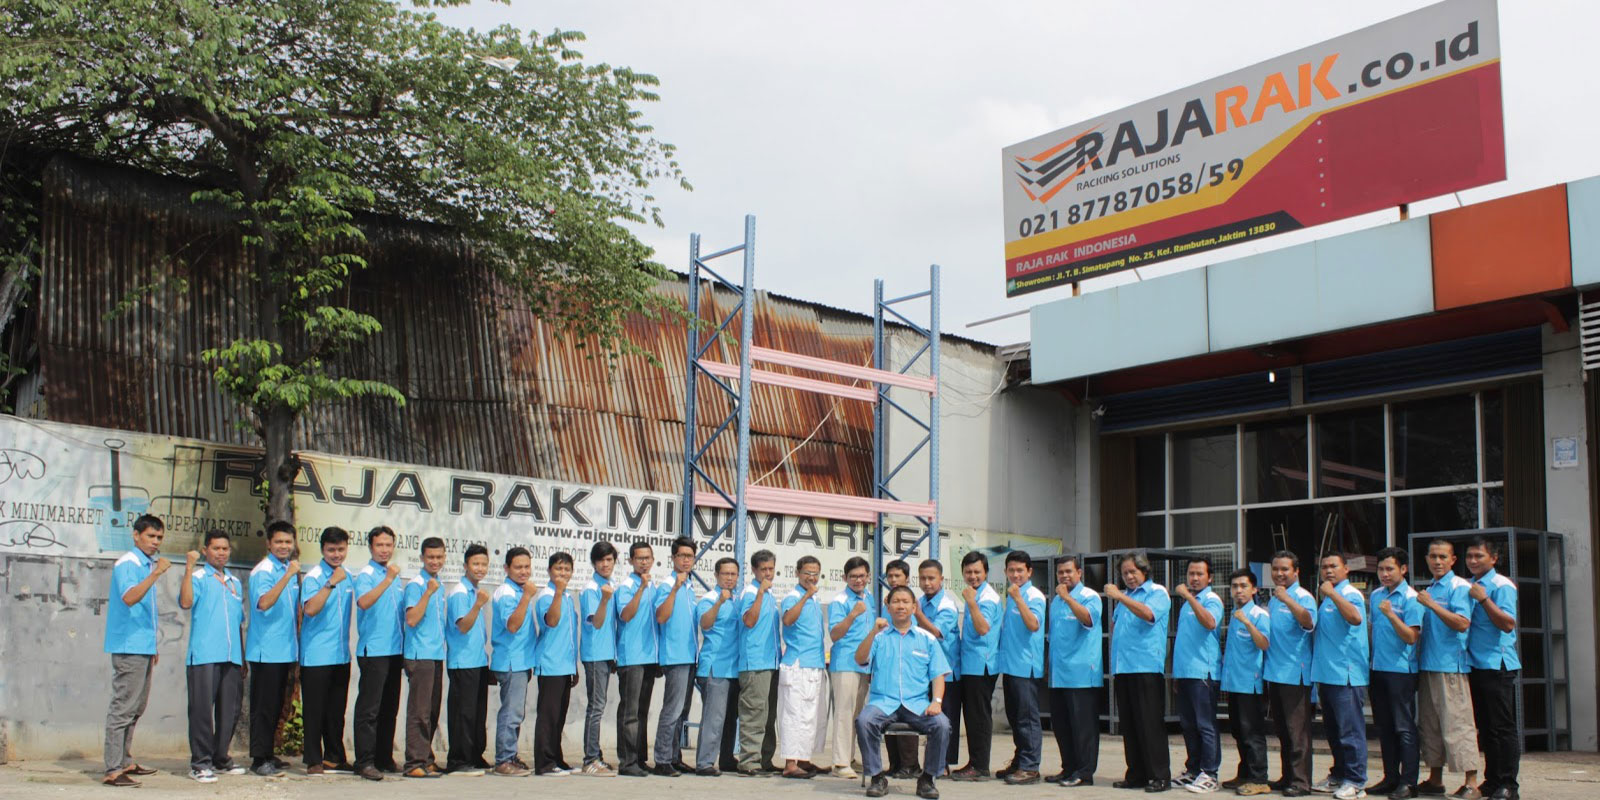 Showroom RAJA RAK MINIMARKET